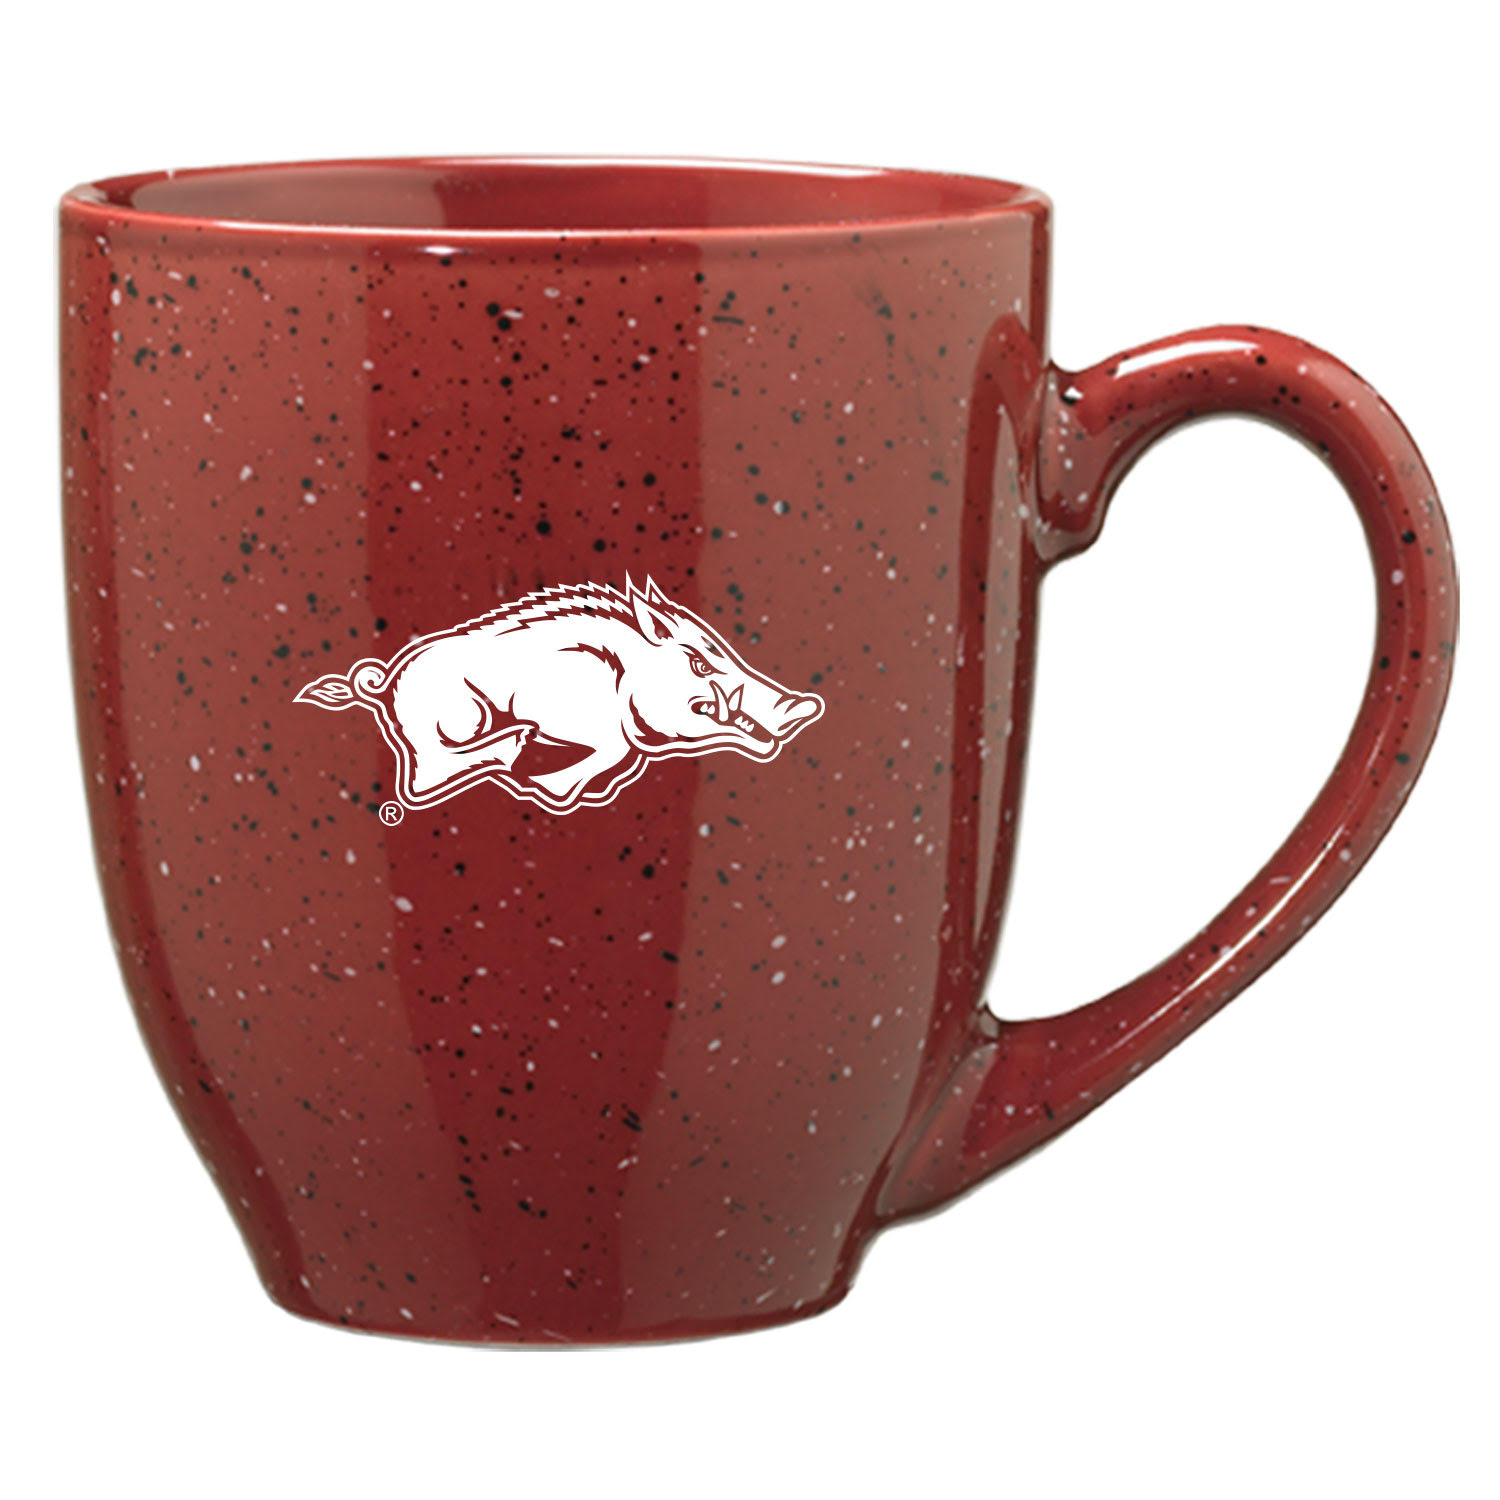 16oz Bistro Speckled Ceramic Mug- Running Hog